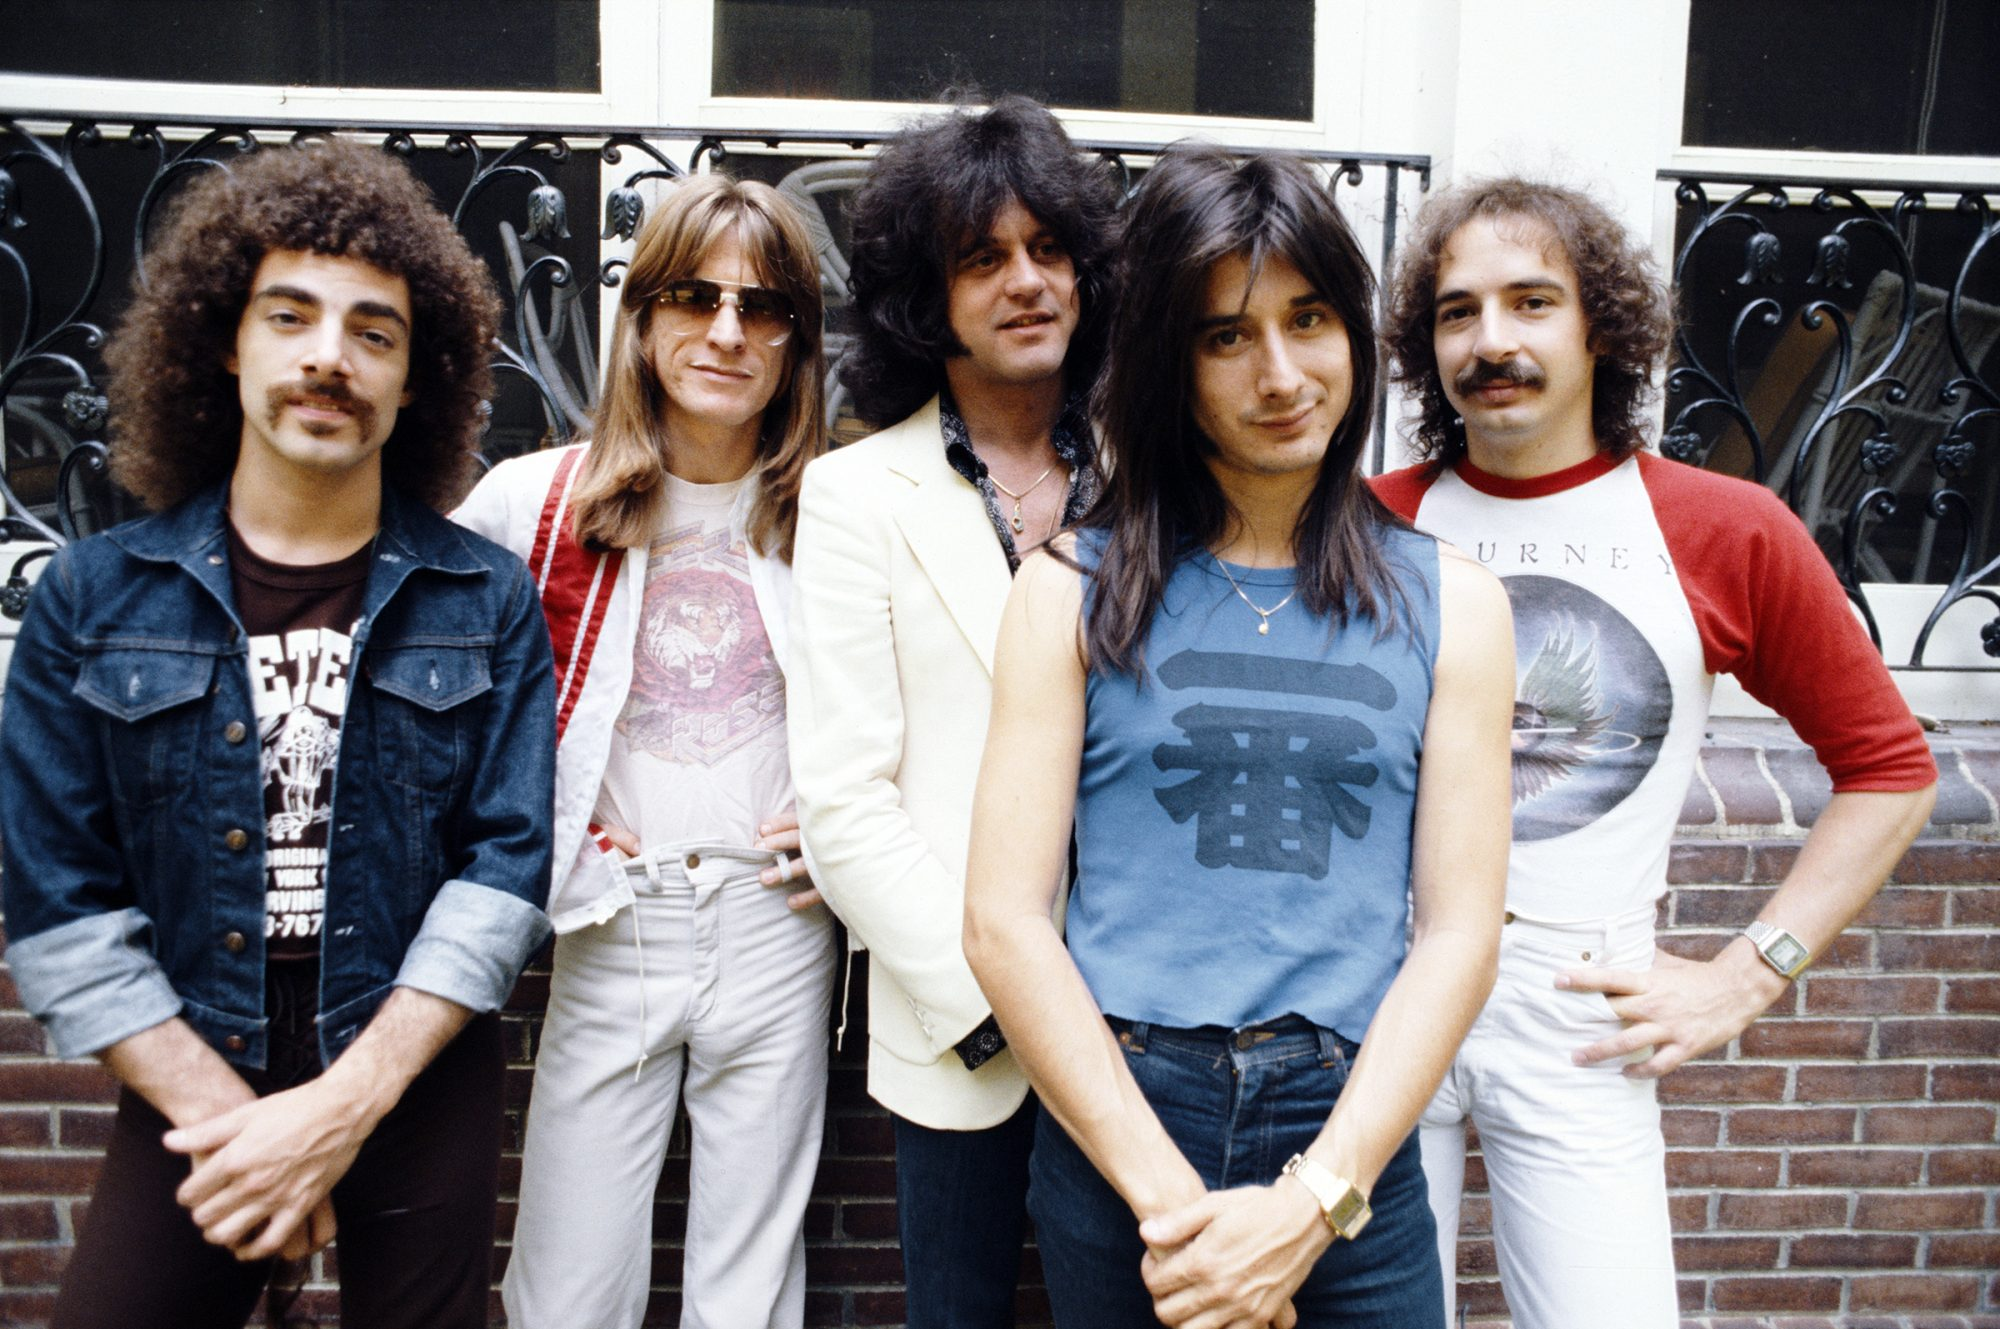 American rock group Journey, New York, June 1979. Left to right: guitarist Neal Schon, bassist Ross Valory, keyboard player Gregg Rolie, singer Steve Perry, and drummer Steve Smith. (Photo by Michael Putland/Getty Images)